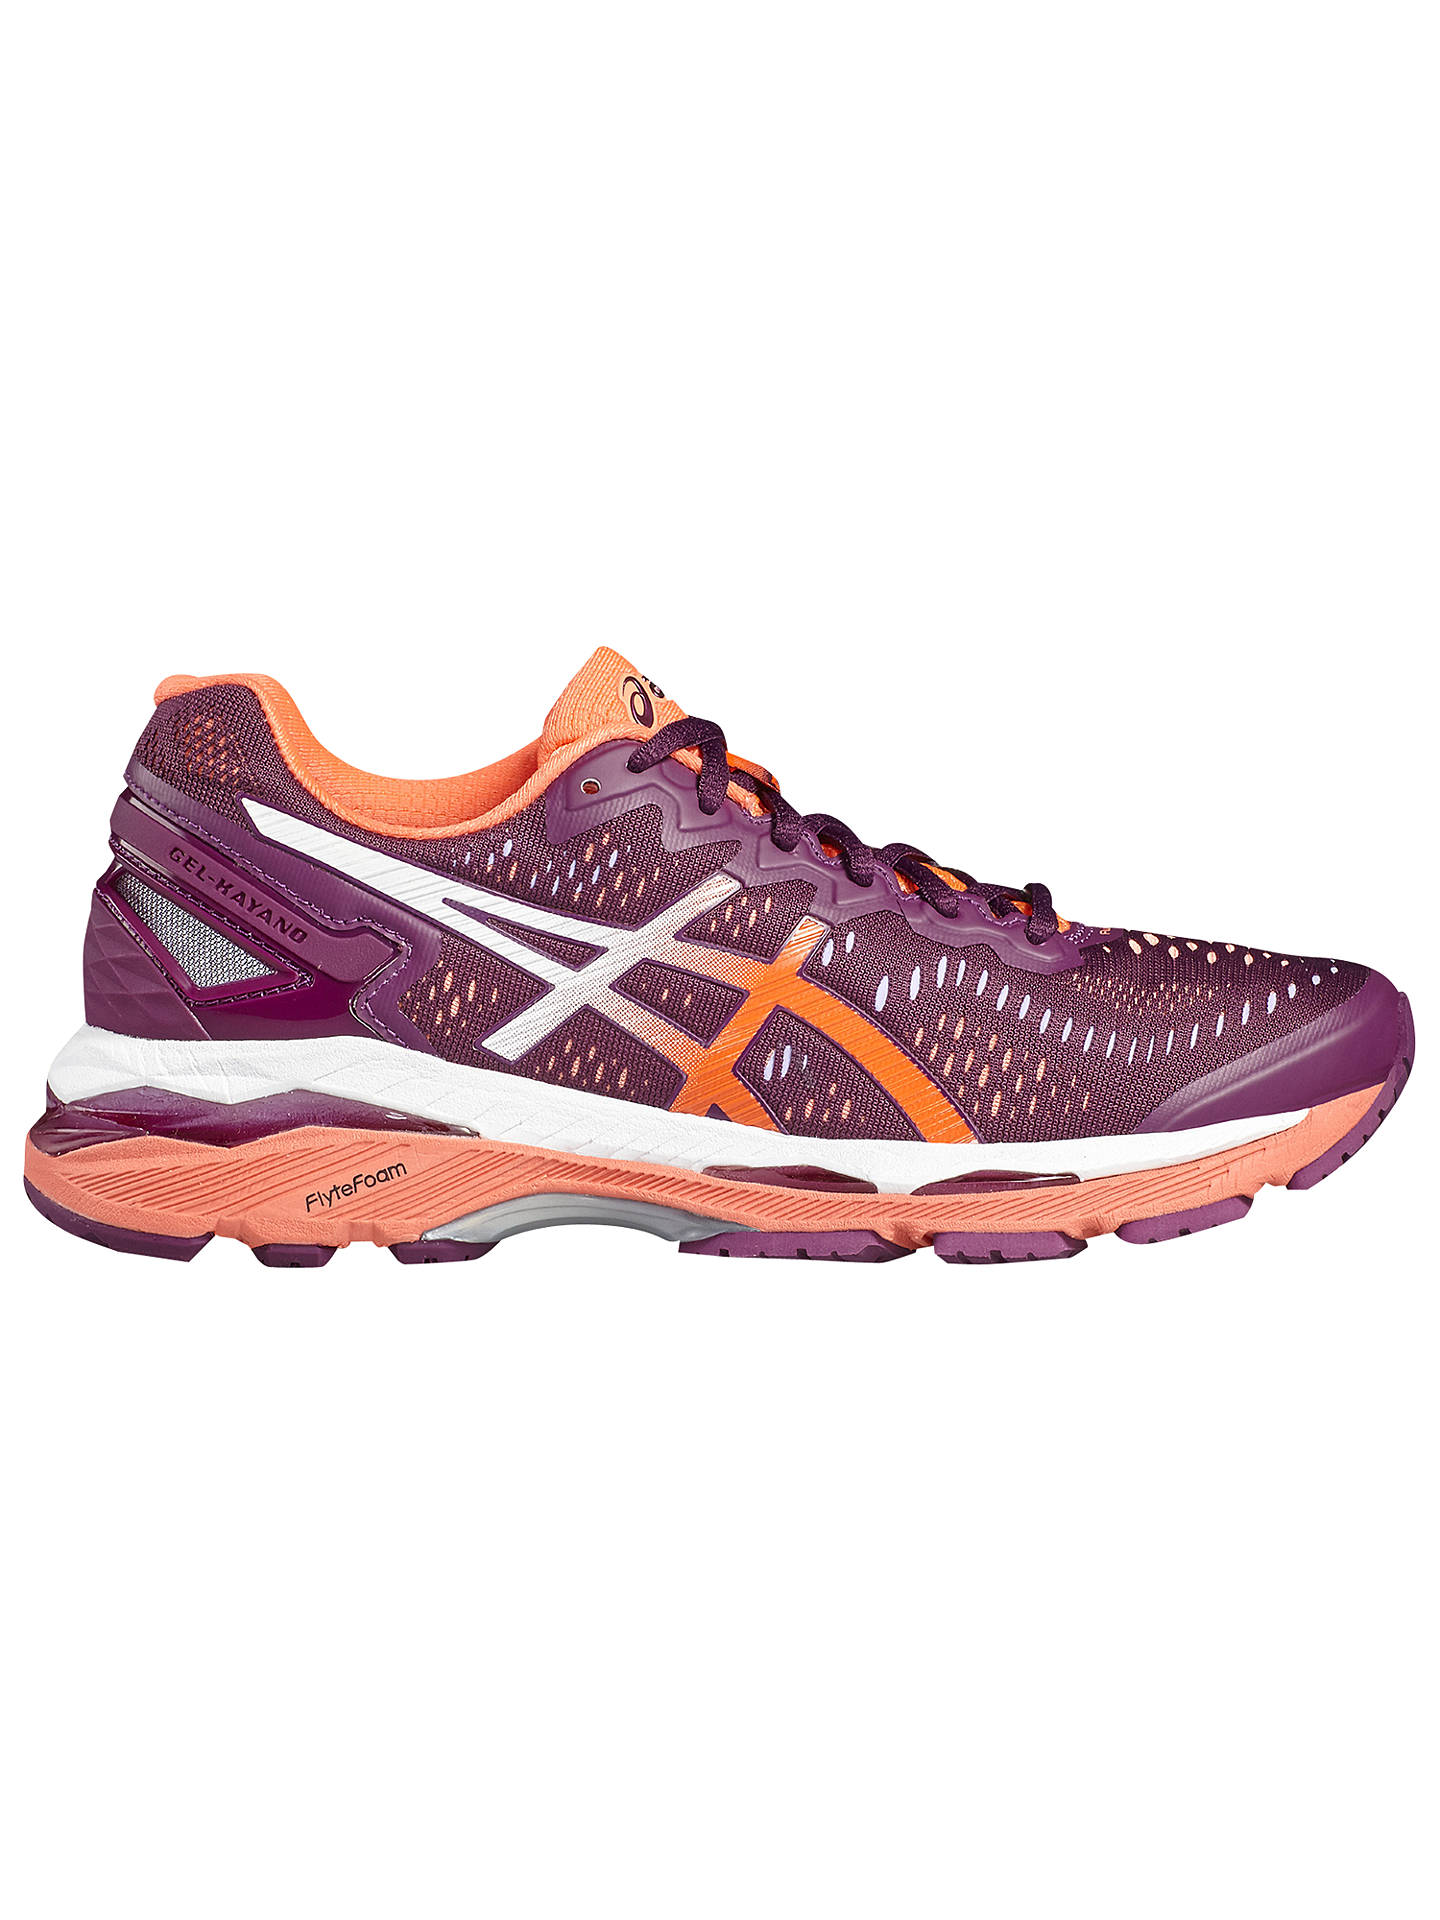 b89bac2375 Buy Asics GEL-Kayano 23 Women s Running Shoes